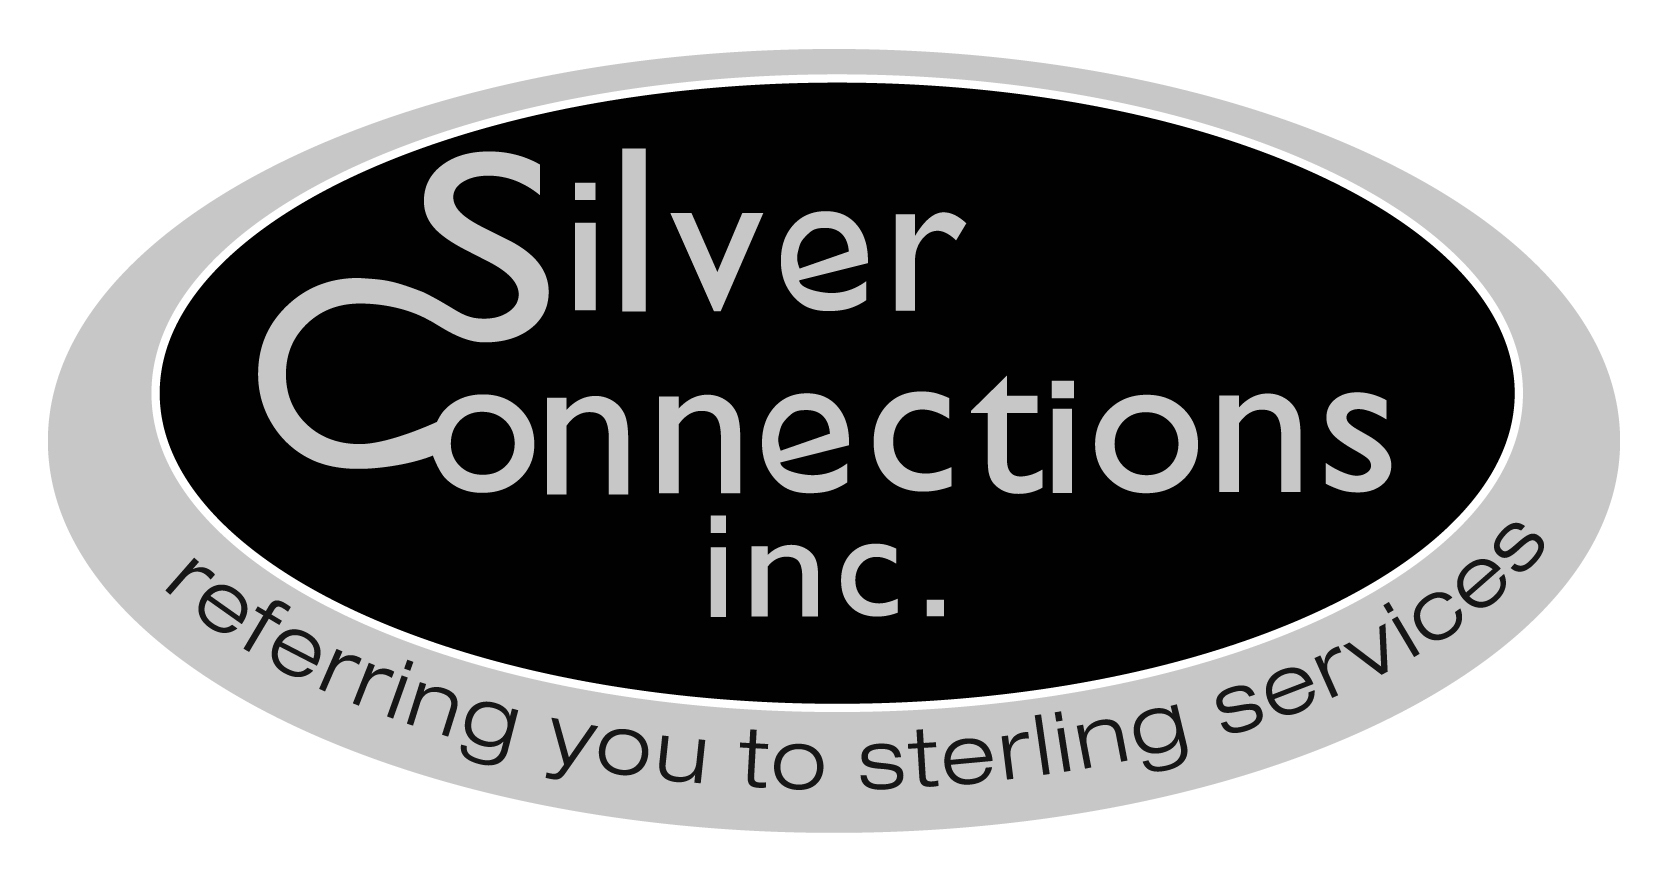 Silver Connections Inc. company logo